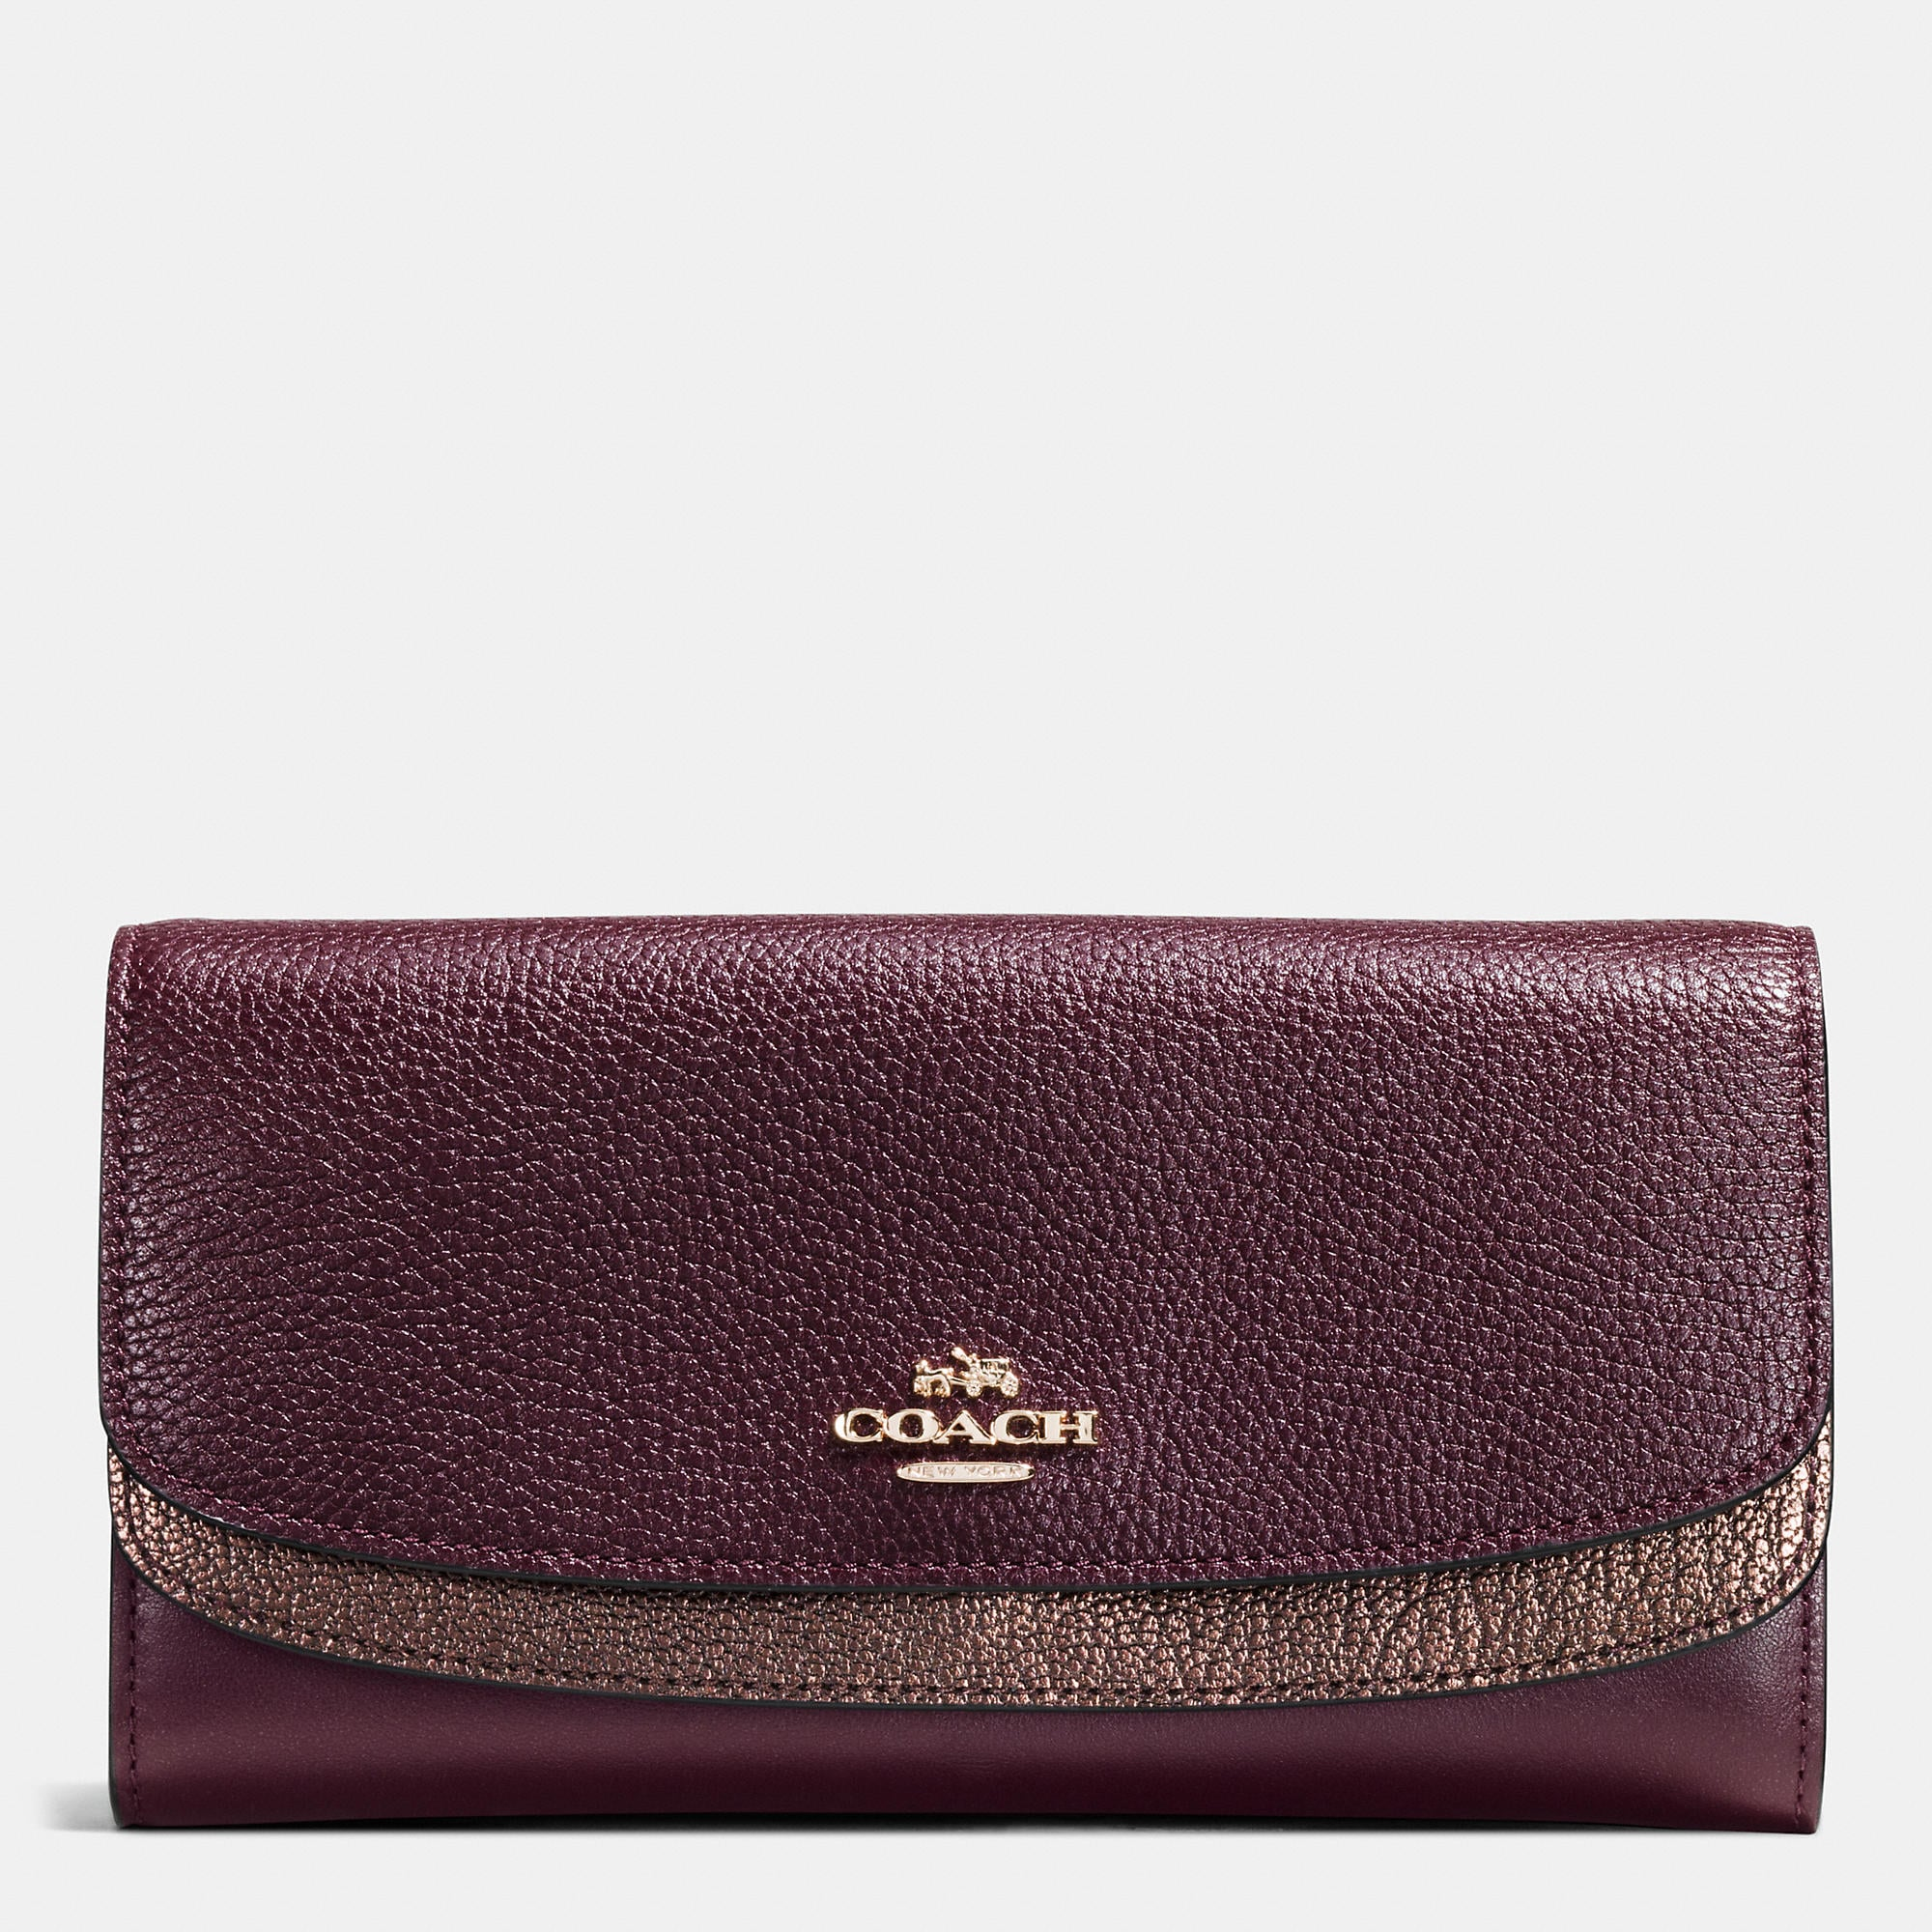 Coach Double Flap Wallet In Colorblock Leather